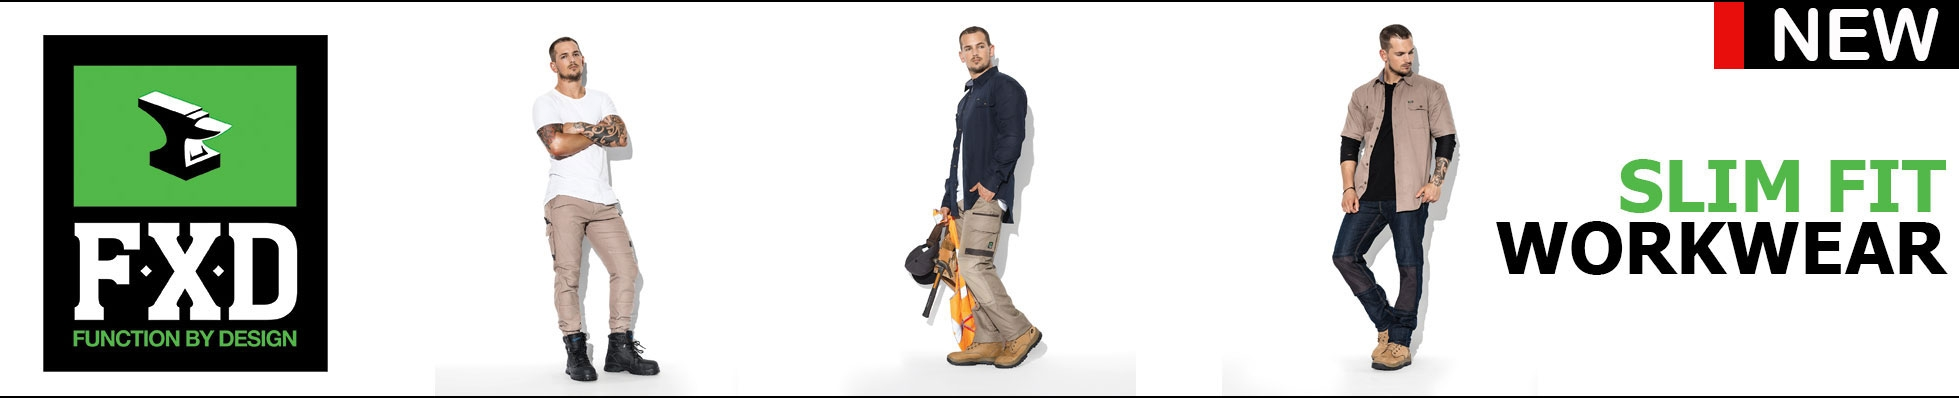 FXD New Slim Fit Workwear